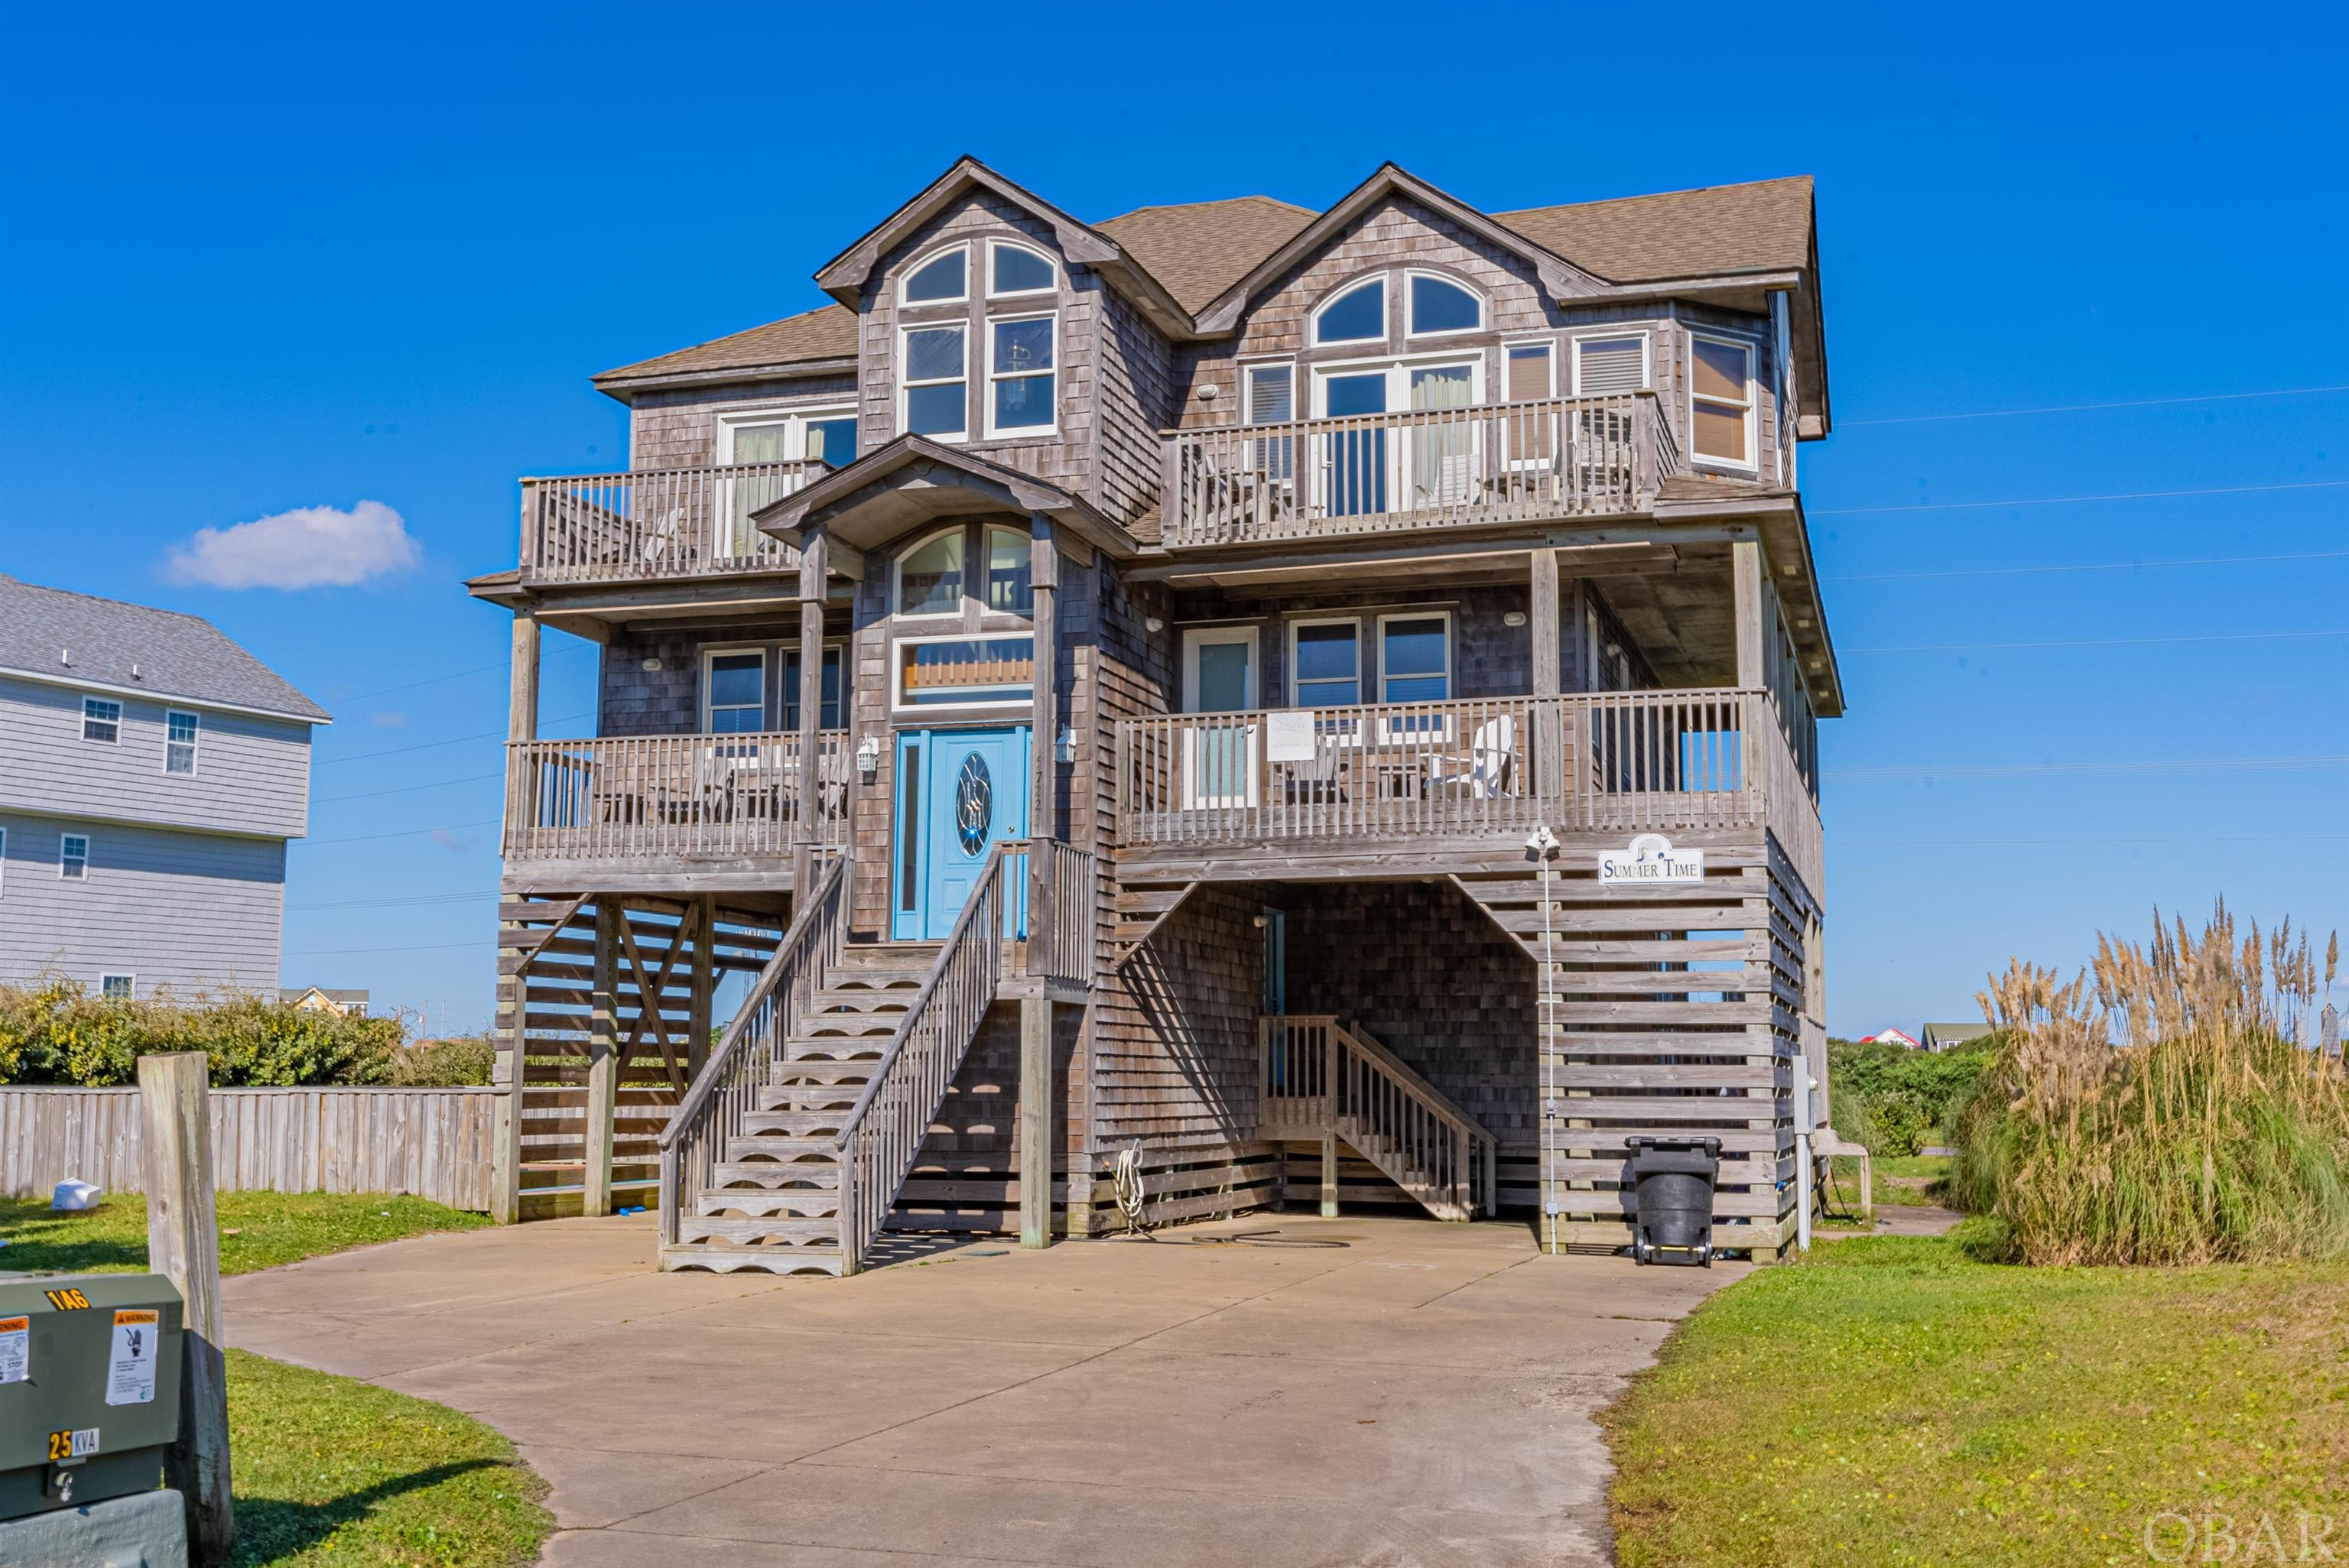 57223 Summer Place Drive Lot 19, Hatteras, NC 27943